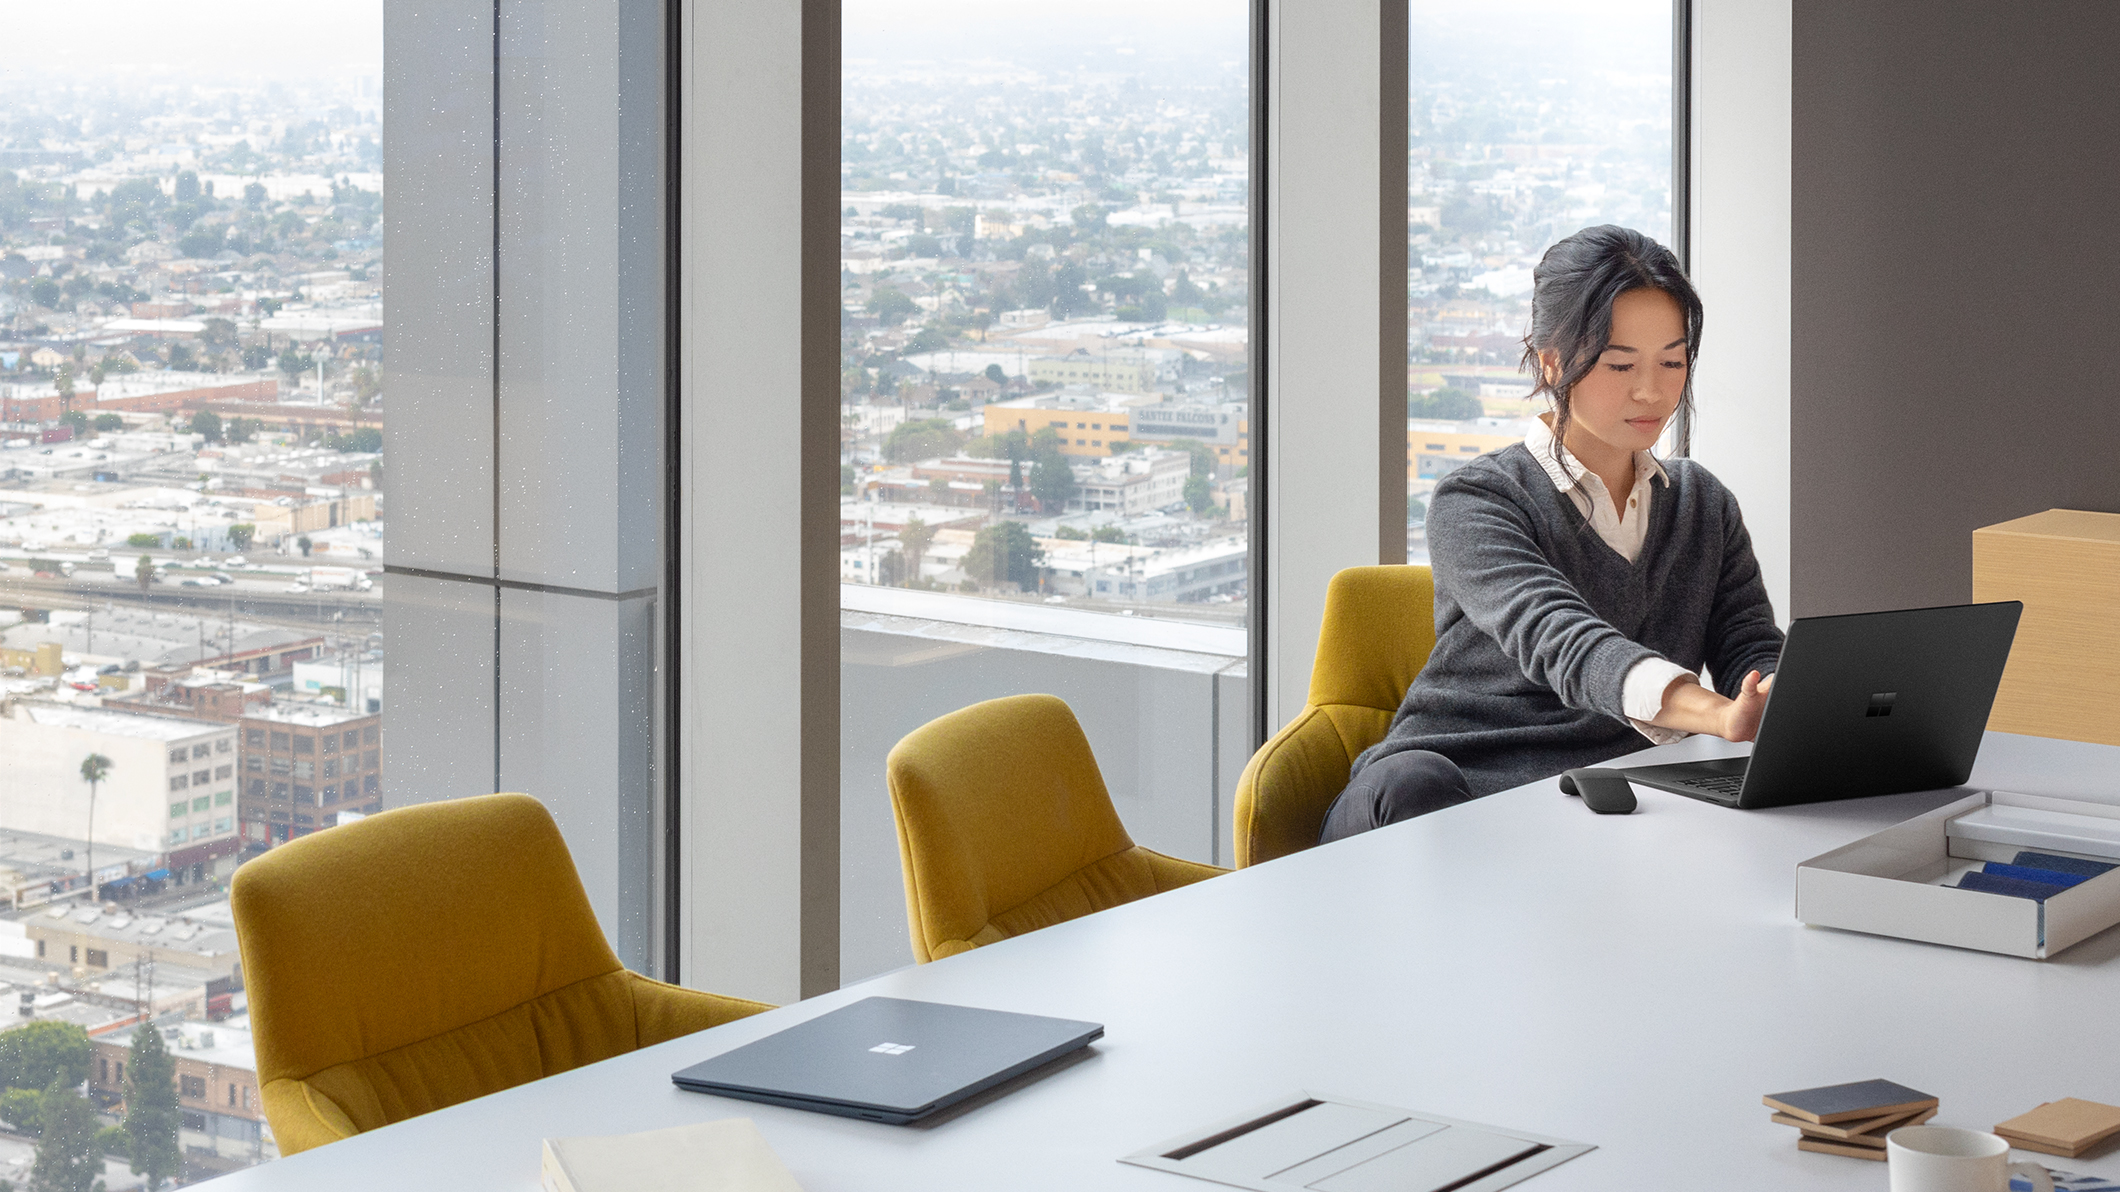 A woman works on a laptop in a conference room.